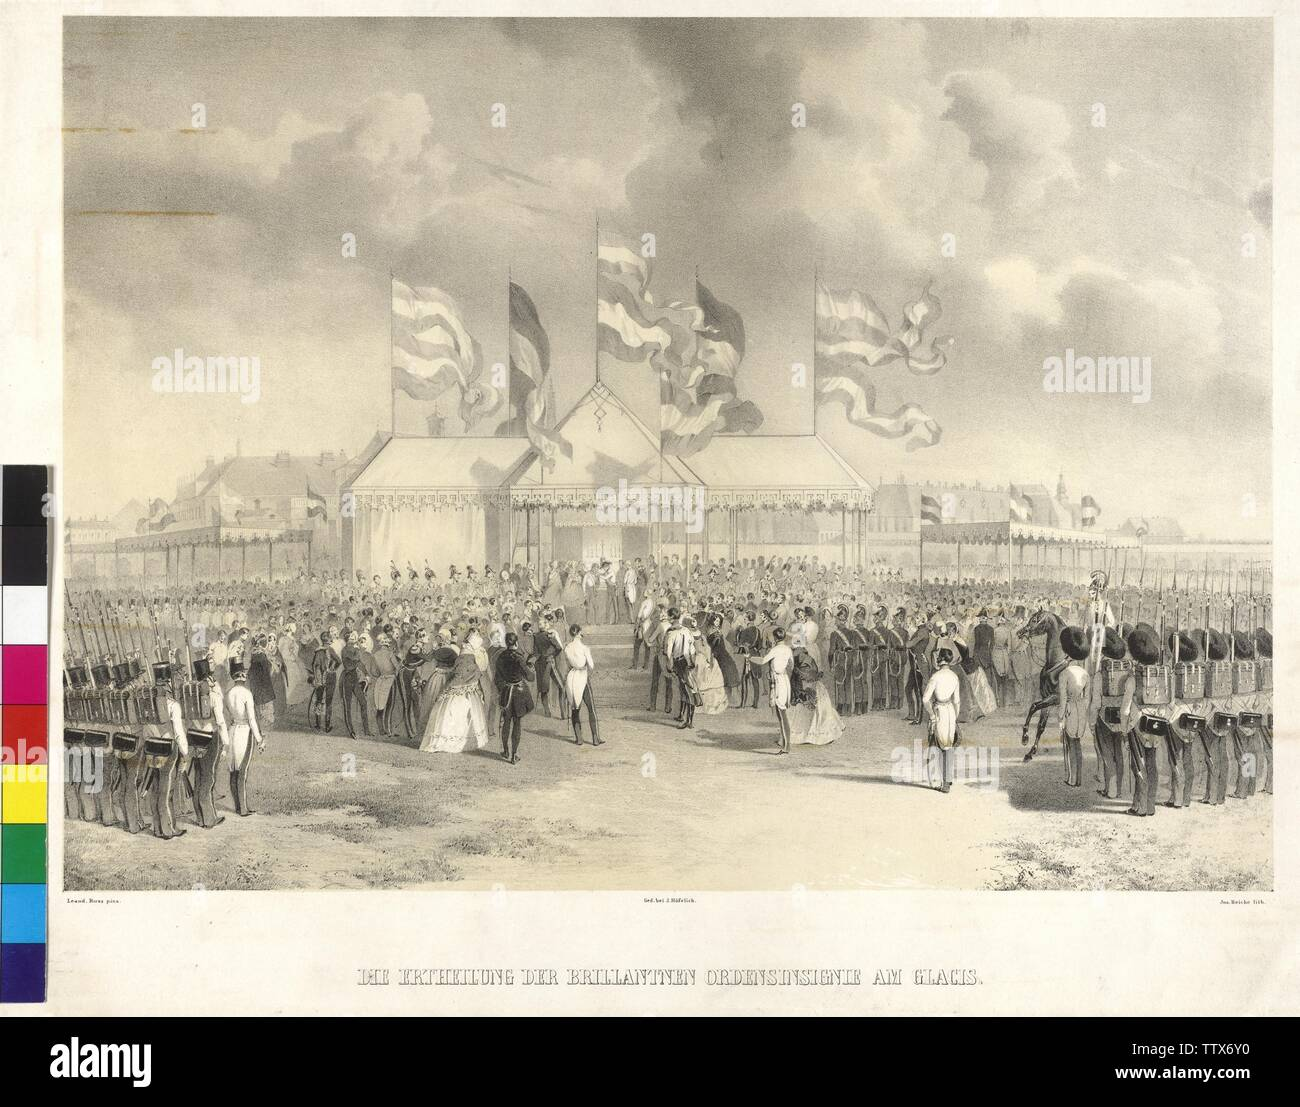 issuance of the brilliant insignia of the Order at glacis, on 5.4.1843 was Archduke Karl the Grand Cross of the military Mary Theresia Order bestow, lithograph by Joseph Heicke based on a watercolour by Leander Russ, Additional-Rights-Clearance-Info-Not-Available - Stock Image